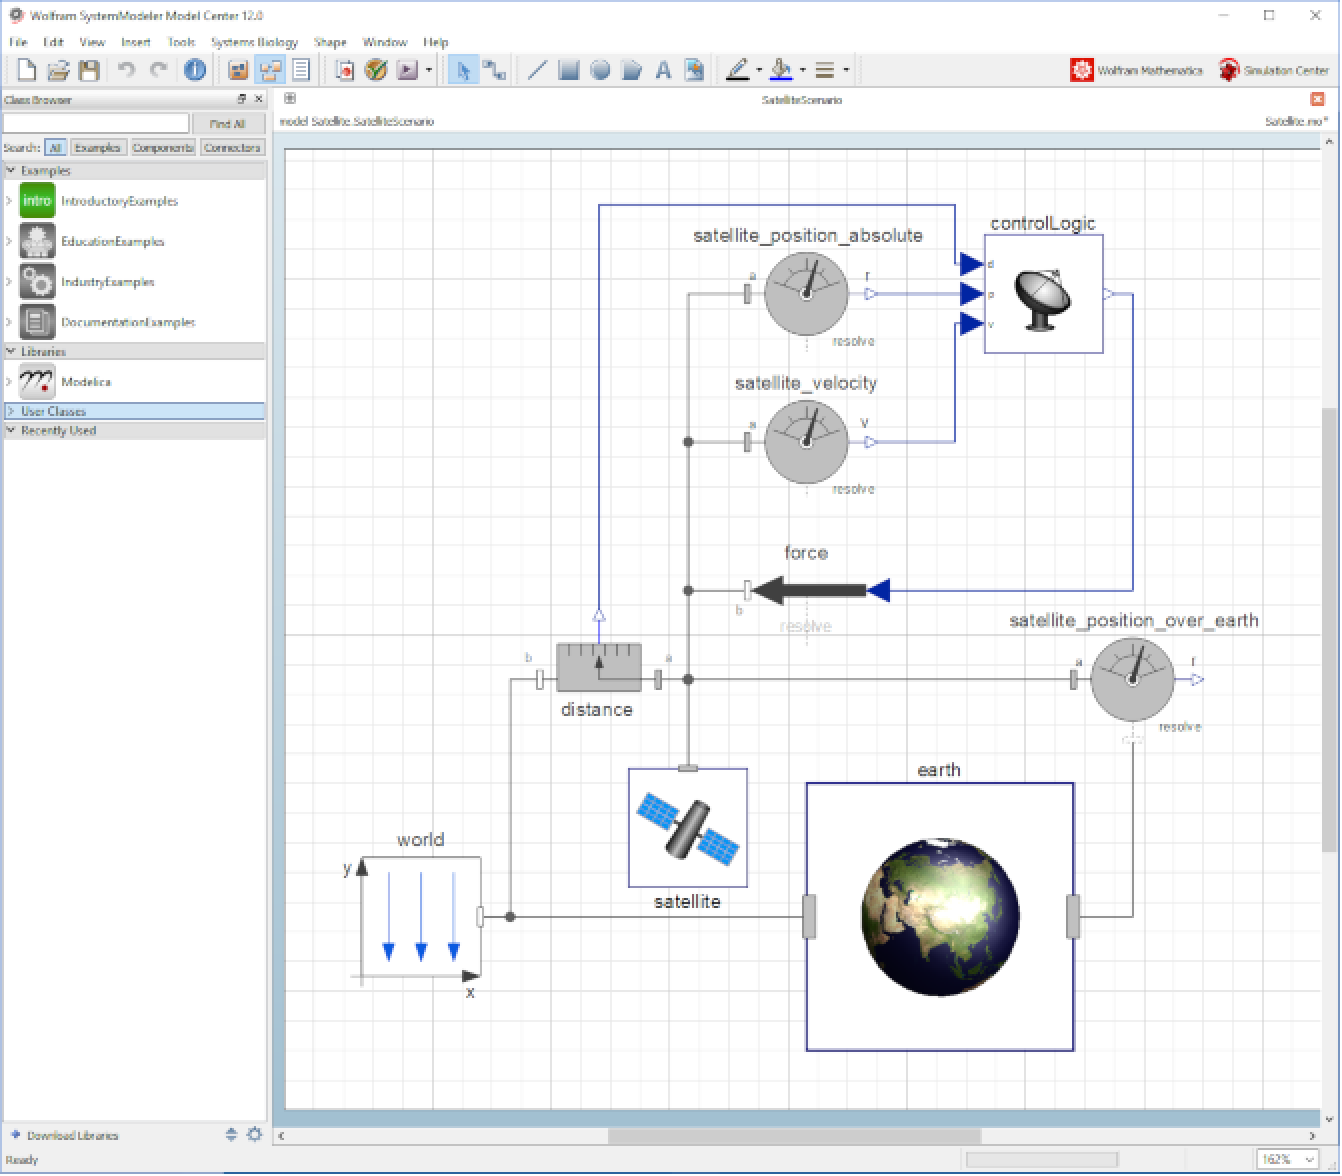 Graphical Modeling Interface: New in Wolfram Language 12